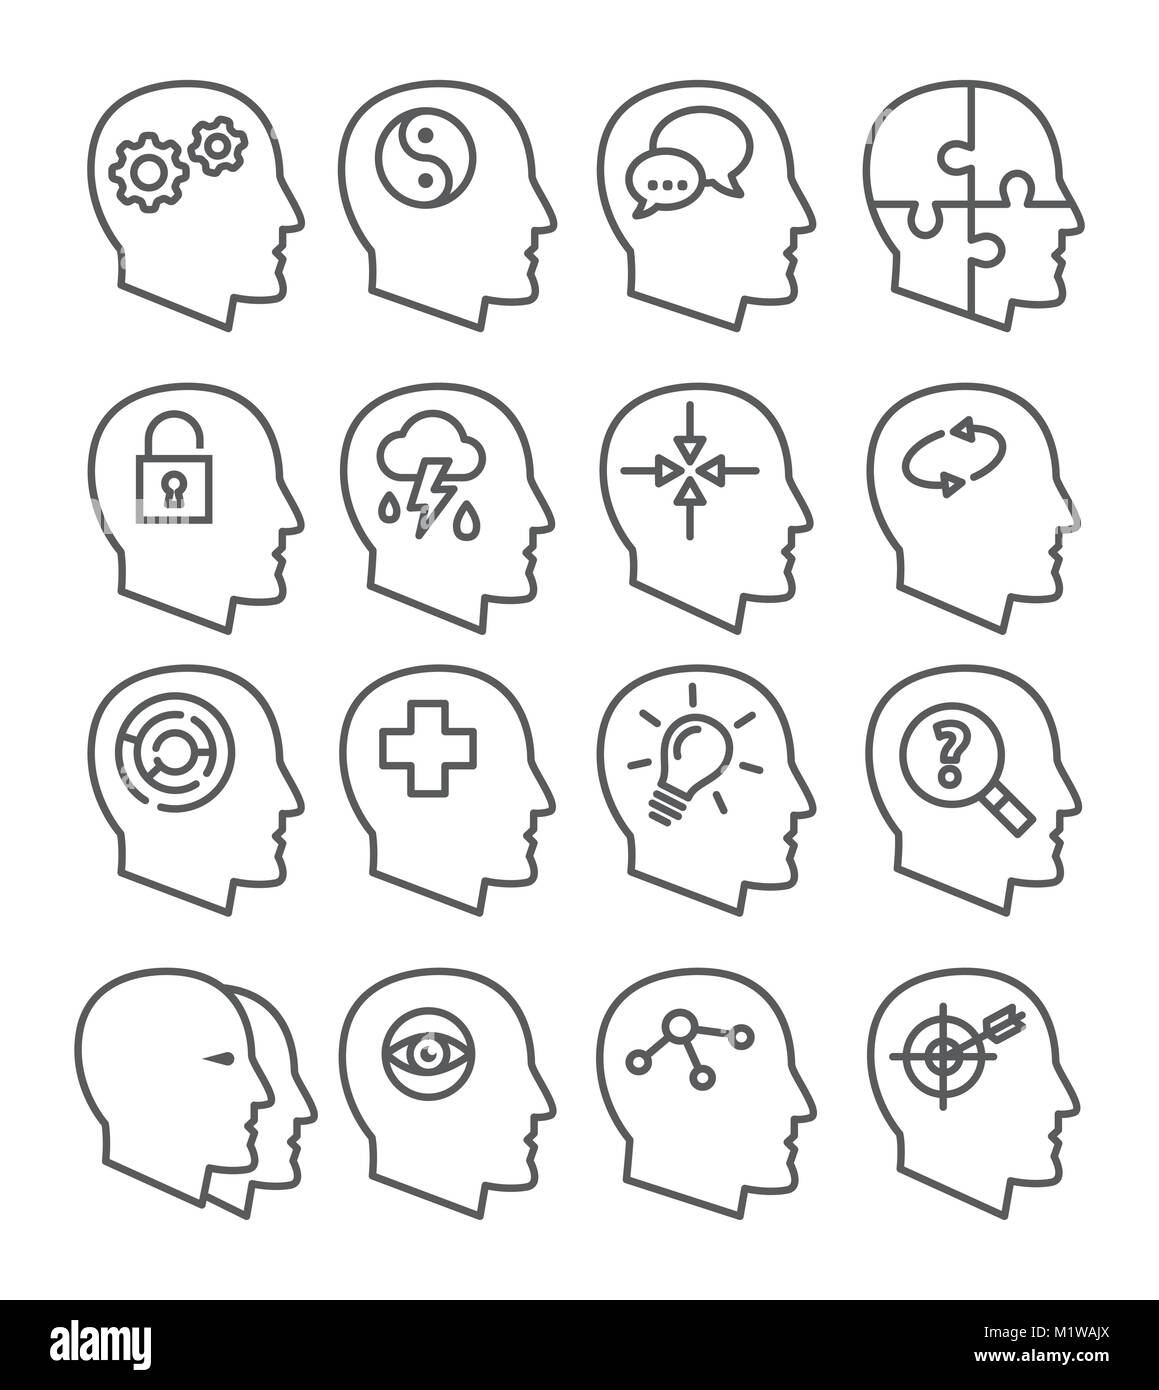 Psychology line vector icons set - Stock Image